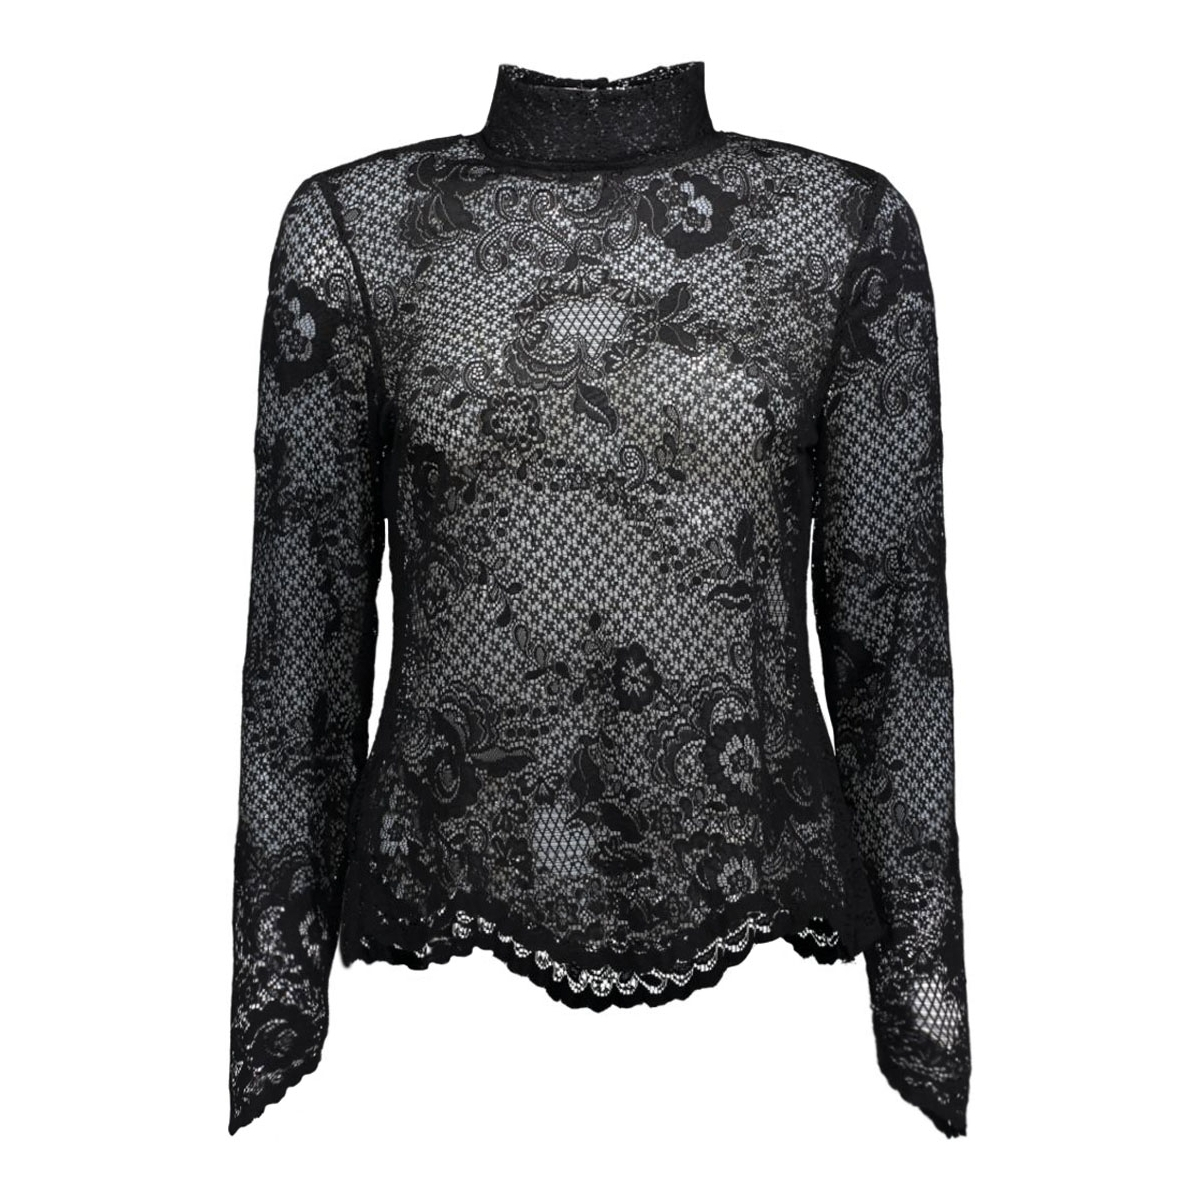 viloras l/s lace top-noos 14036709 vila t-shirt black